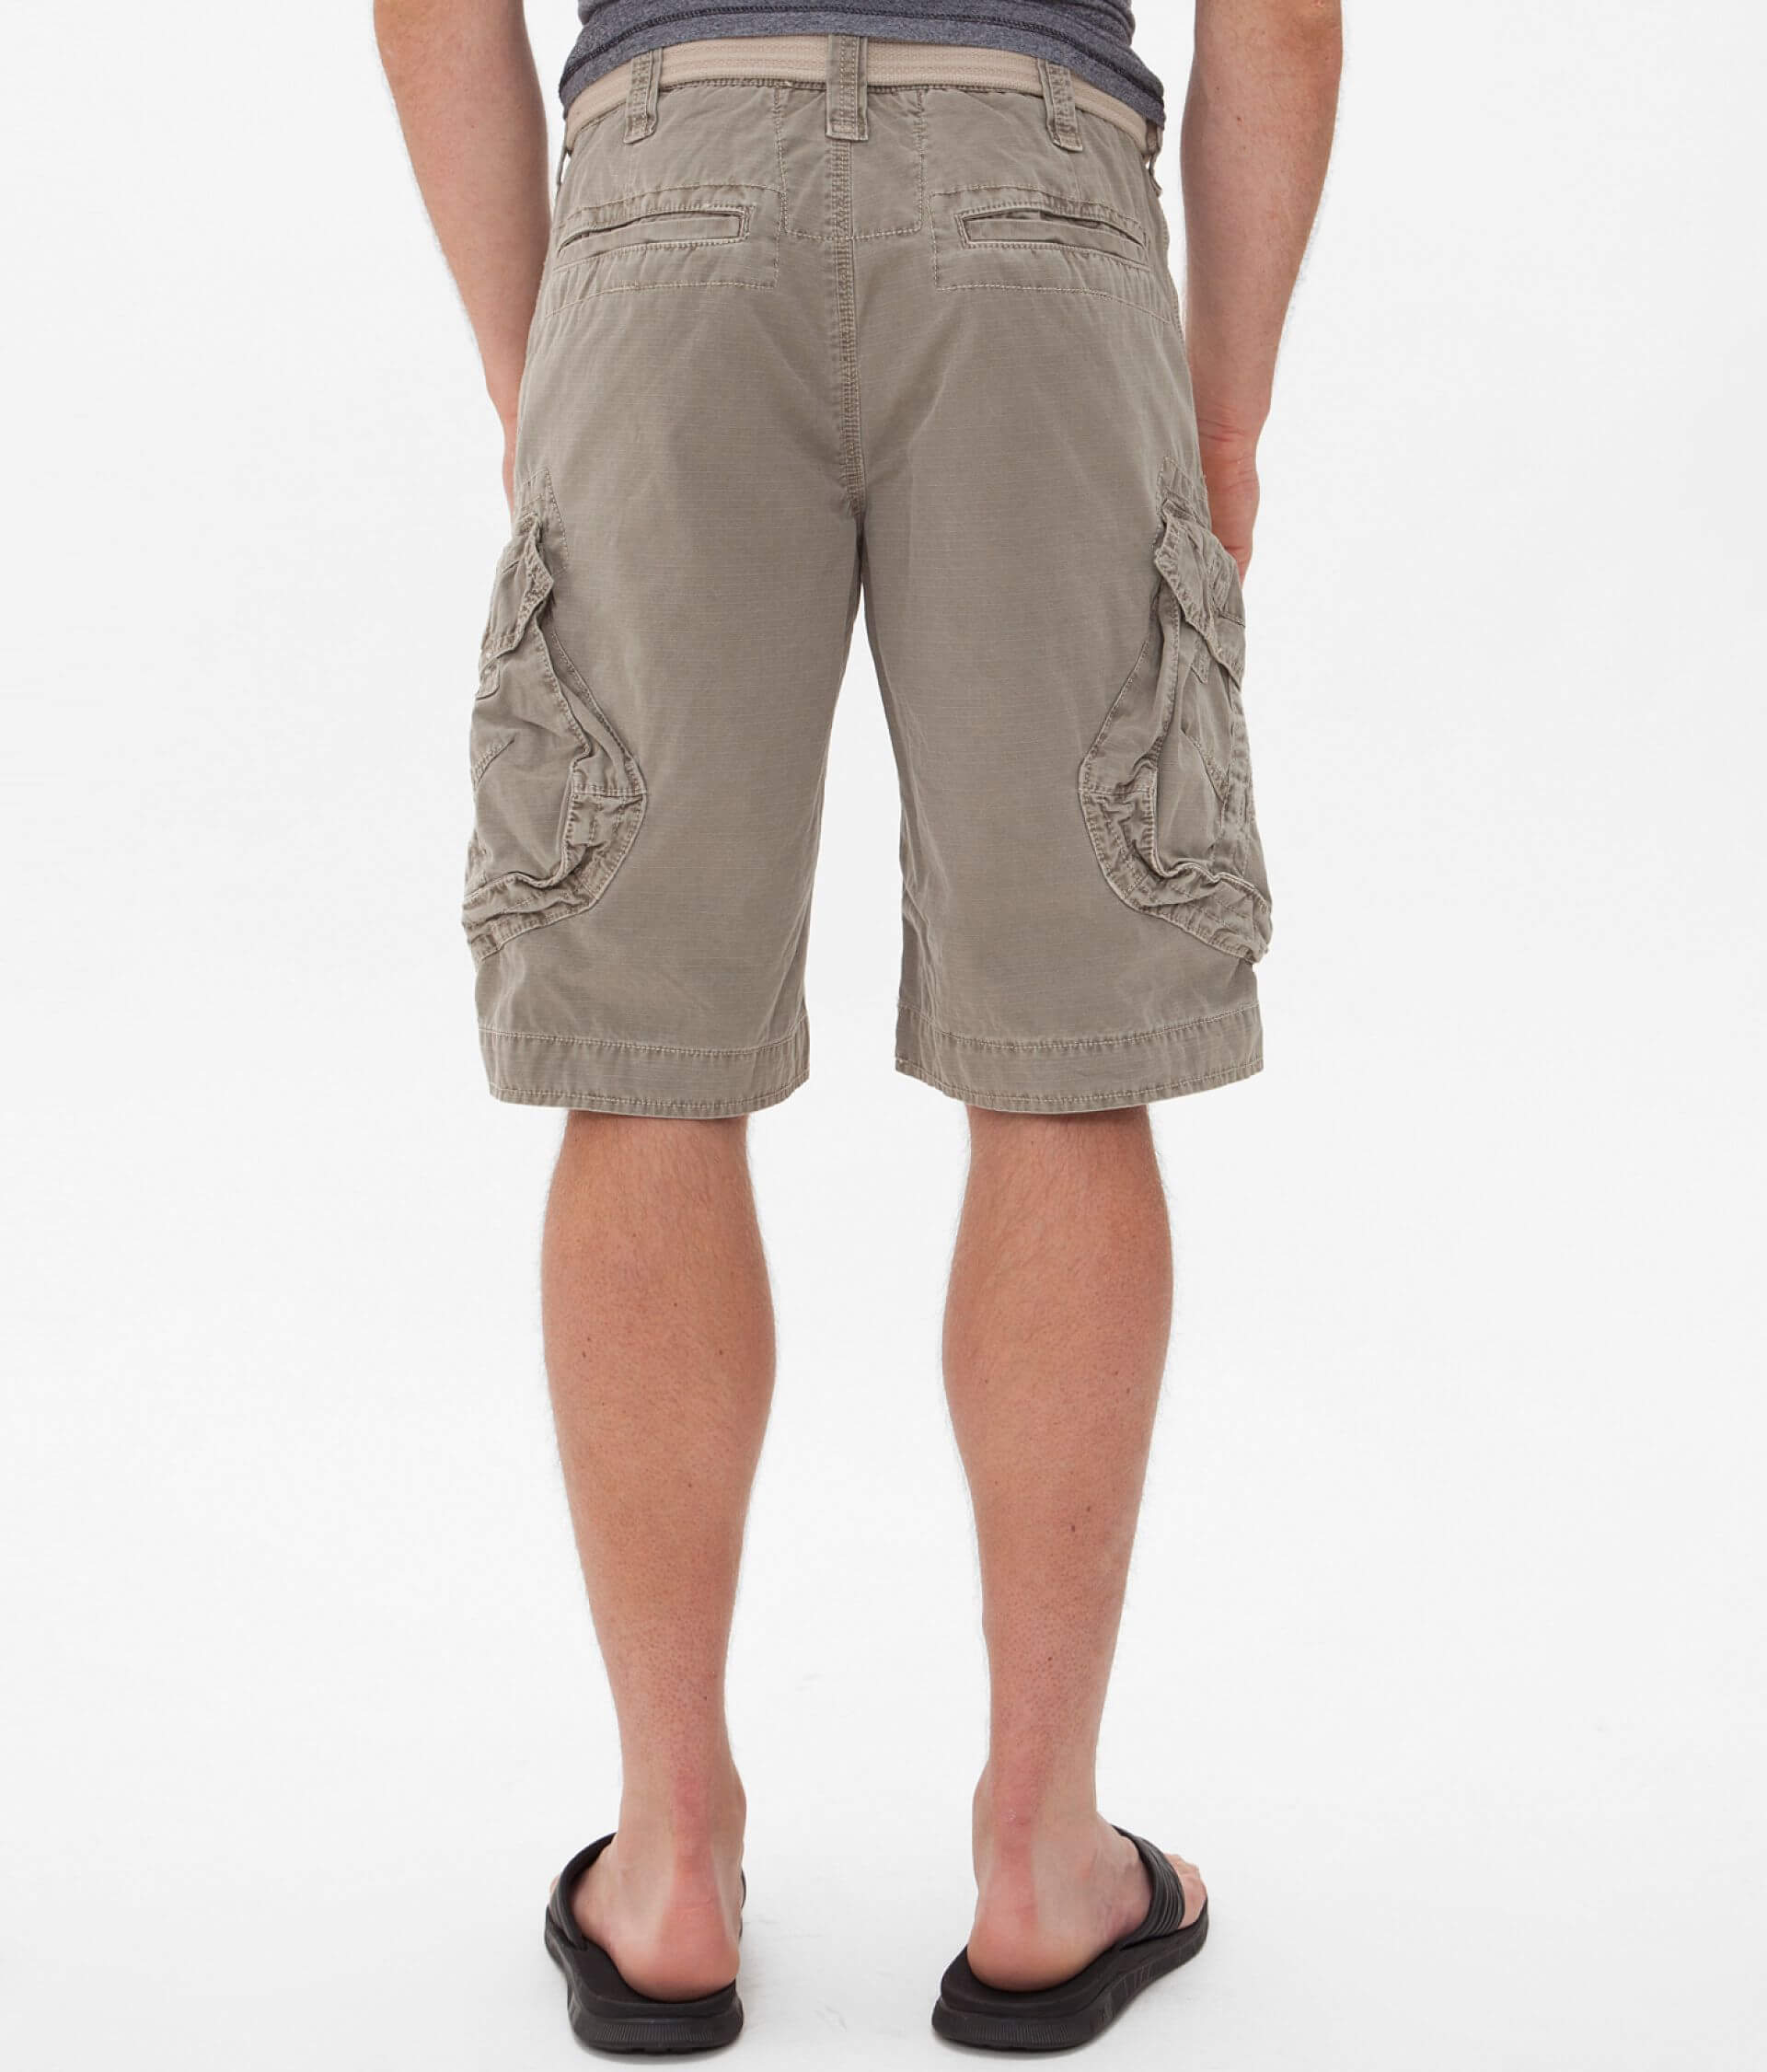 00f1368b6dad30 Jet Lag Take Off 3 Cargo Short - Men's Shorts in Cement | Buckle